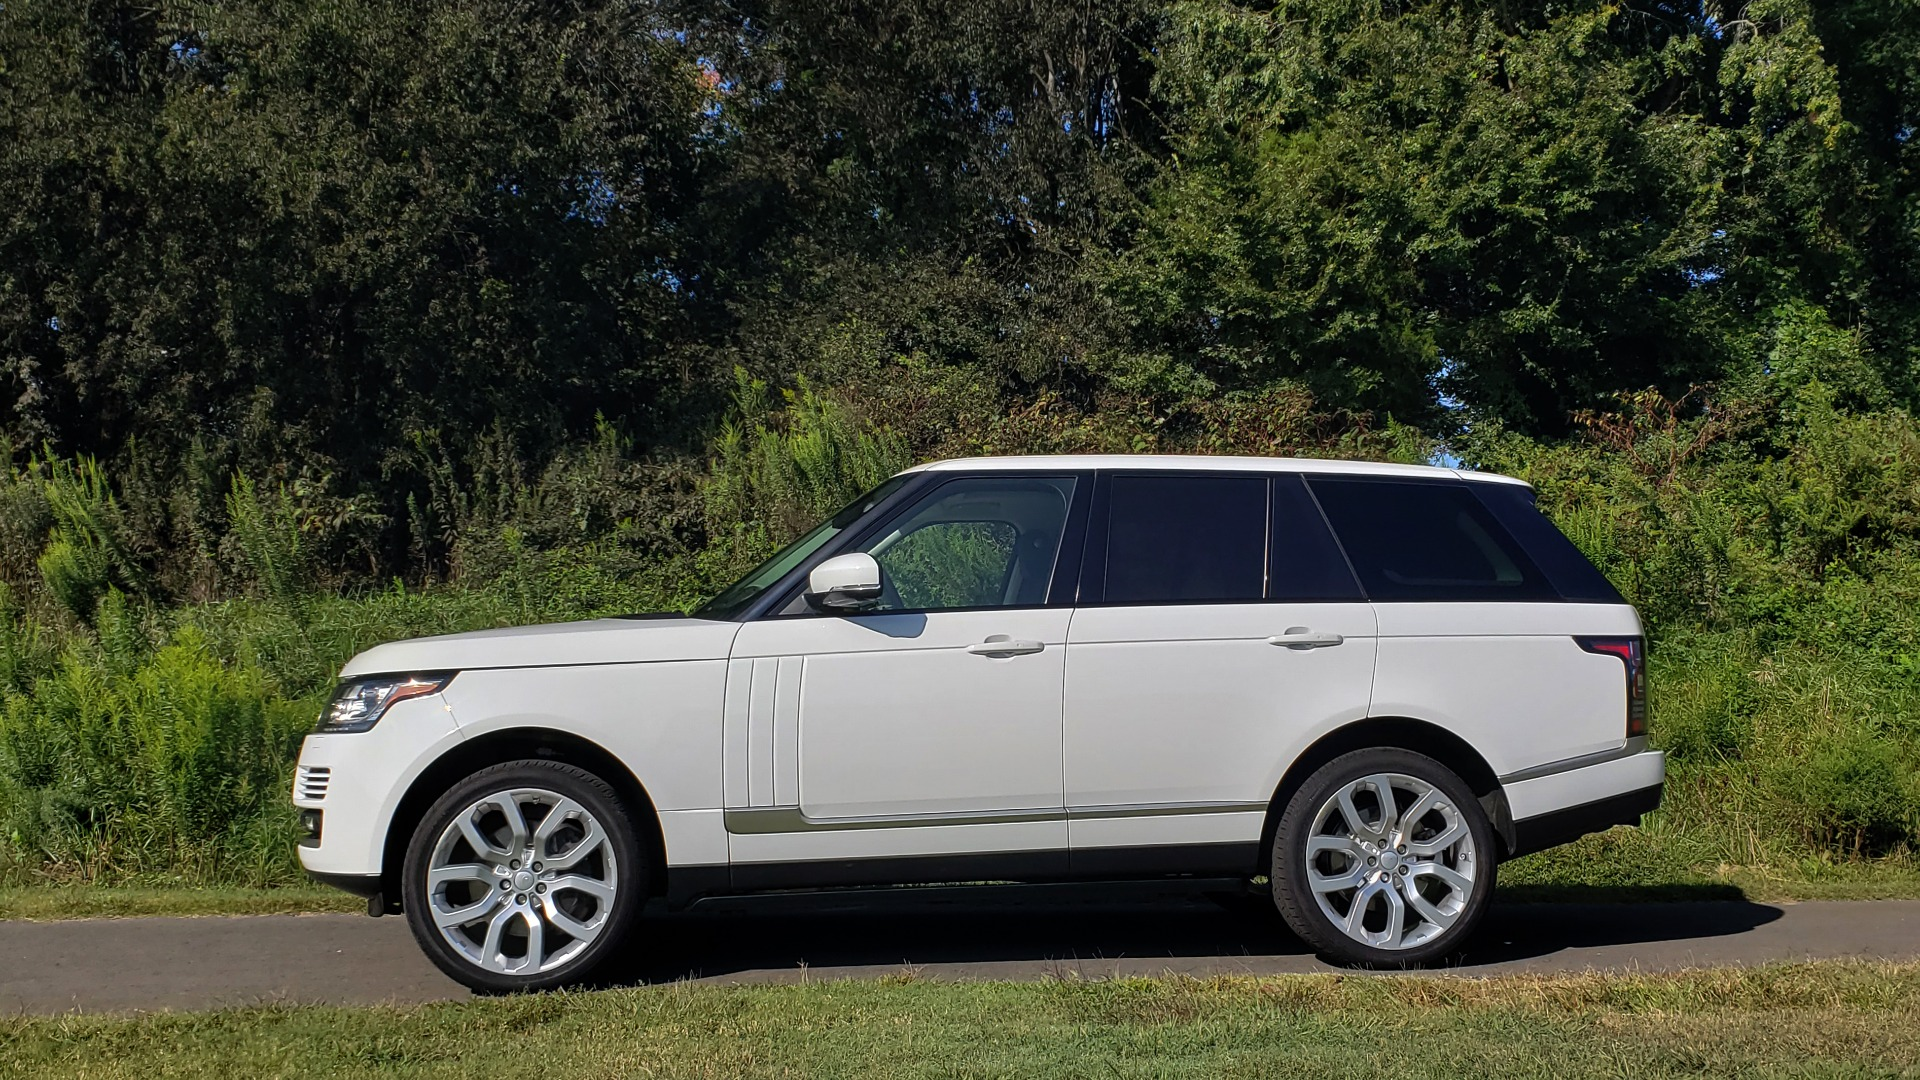 Used 2015 Land Rover Range Rover Supercharged for sale Sold at Formula Imports in Charlotte NC 28227 7